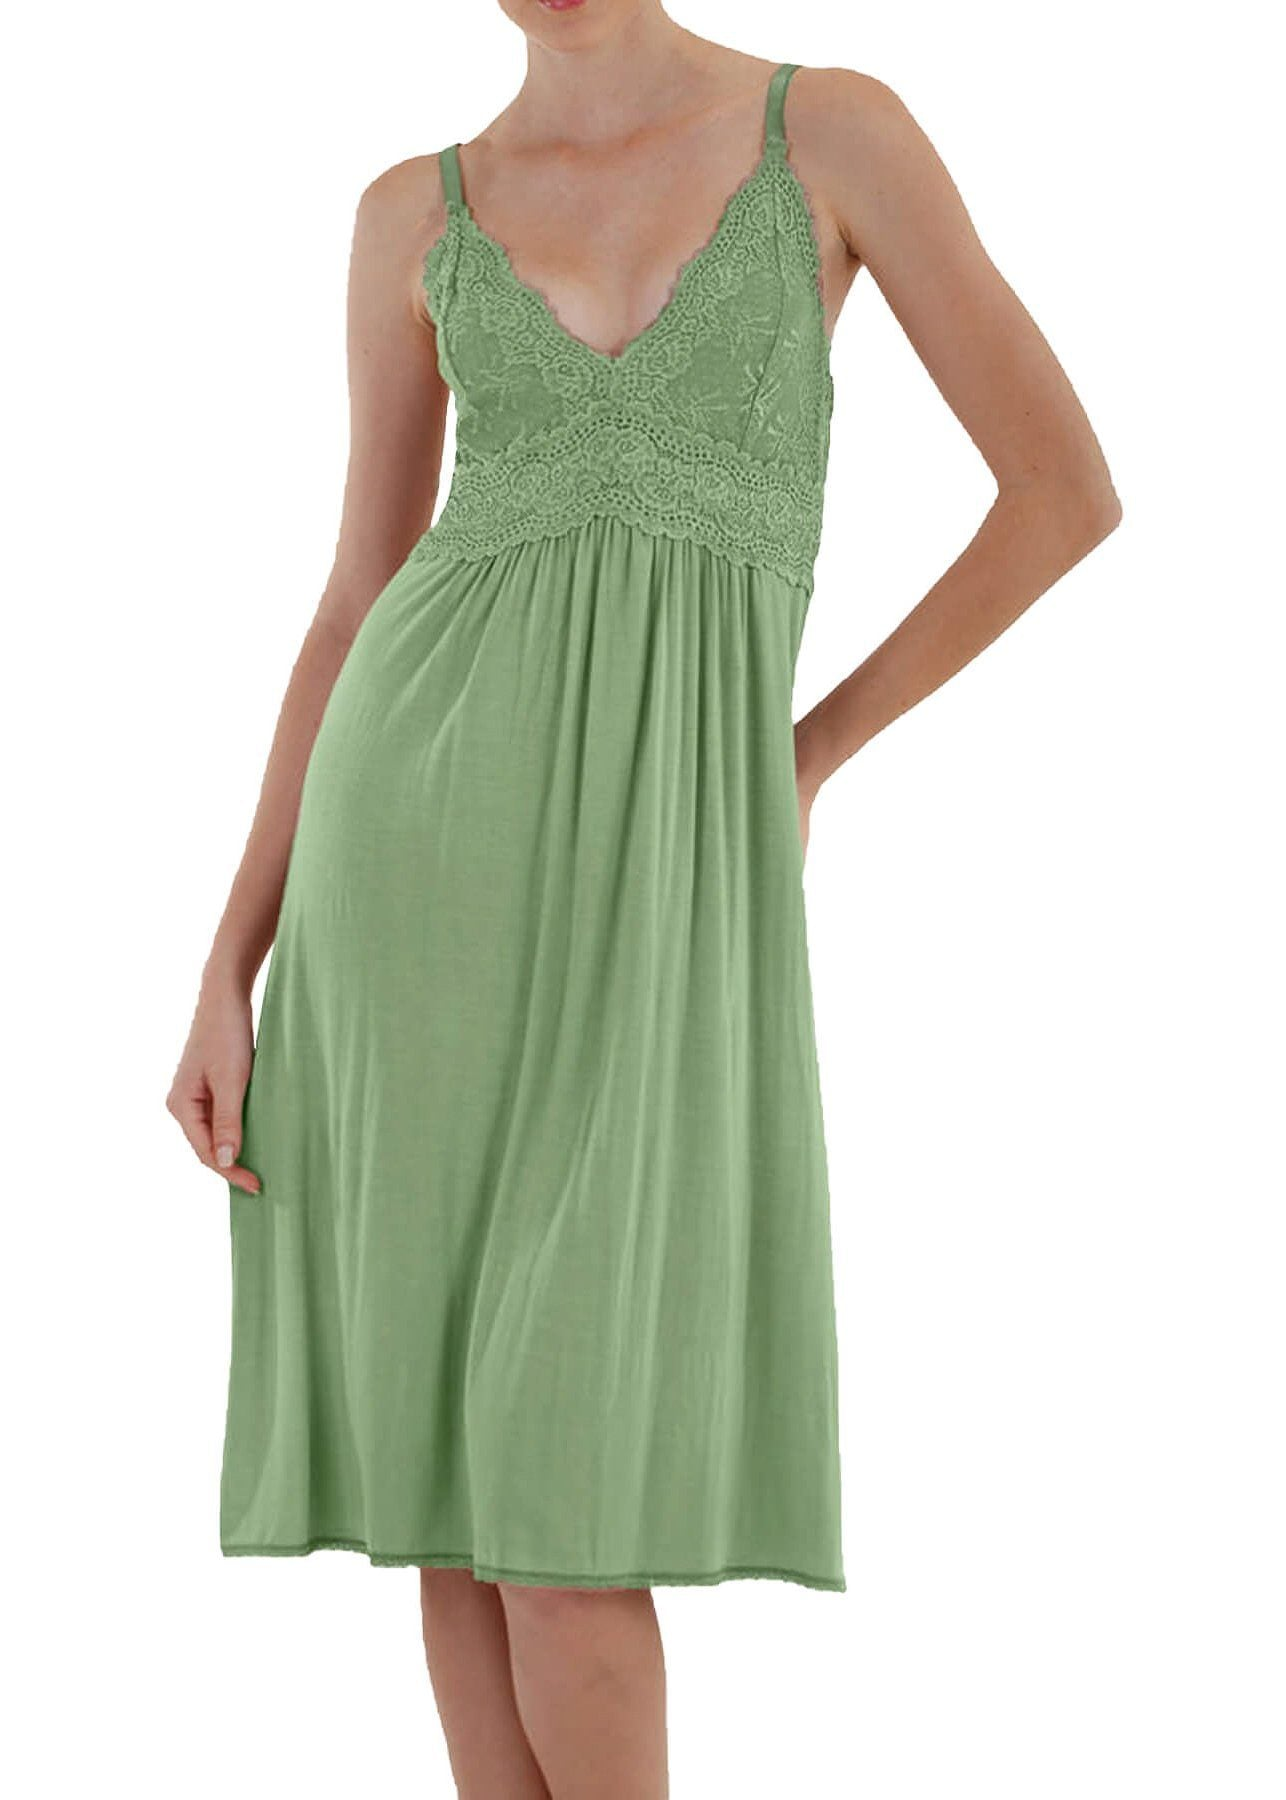 Bliss Gown in Celery #21905